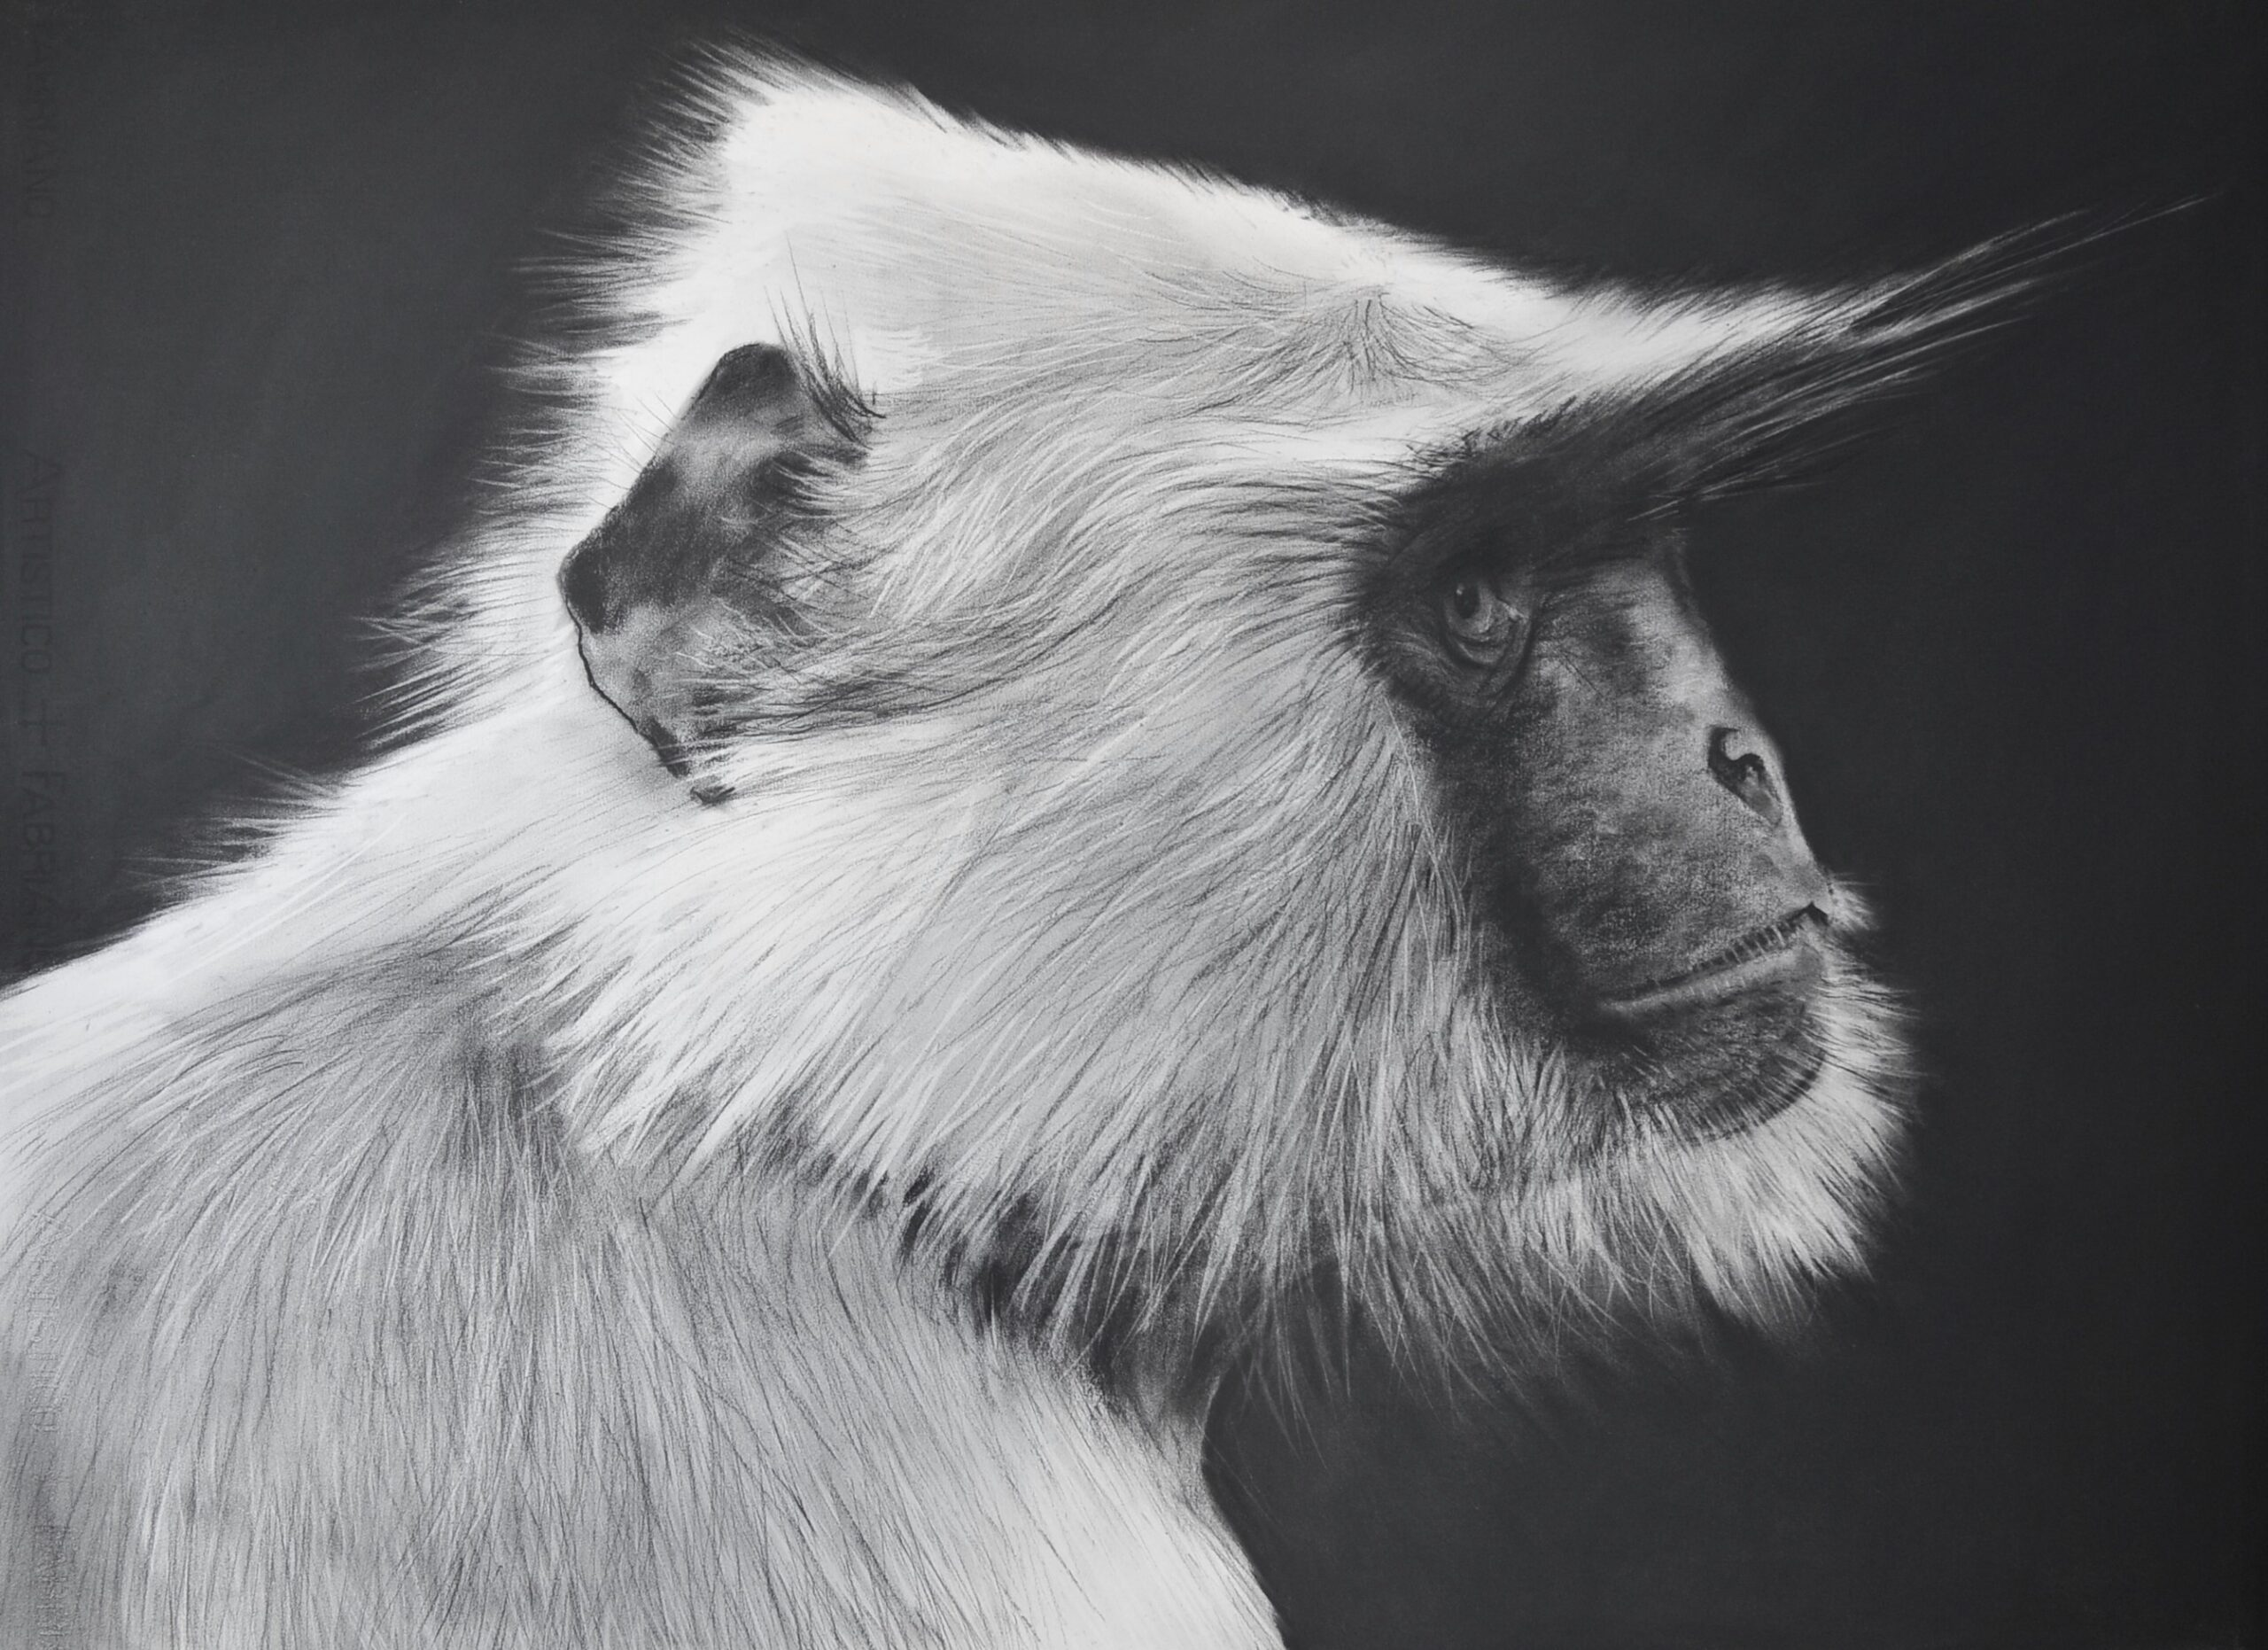 Charcoal drawing of a langur monkey